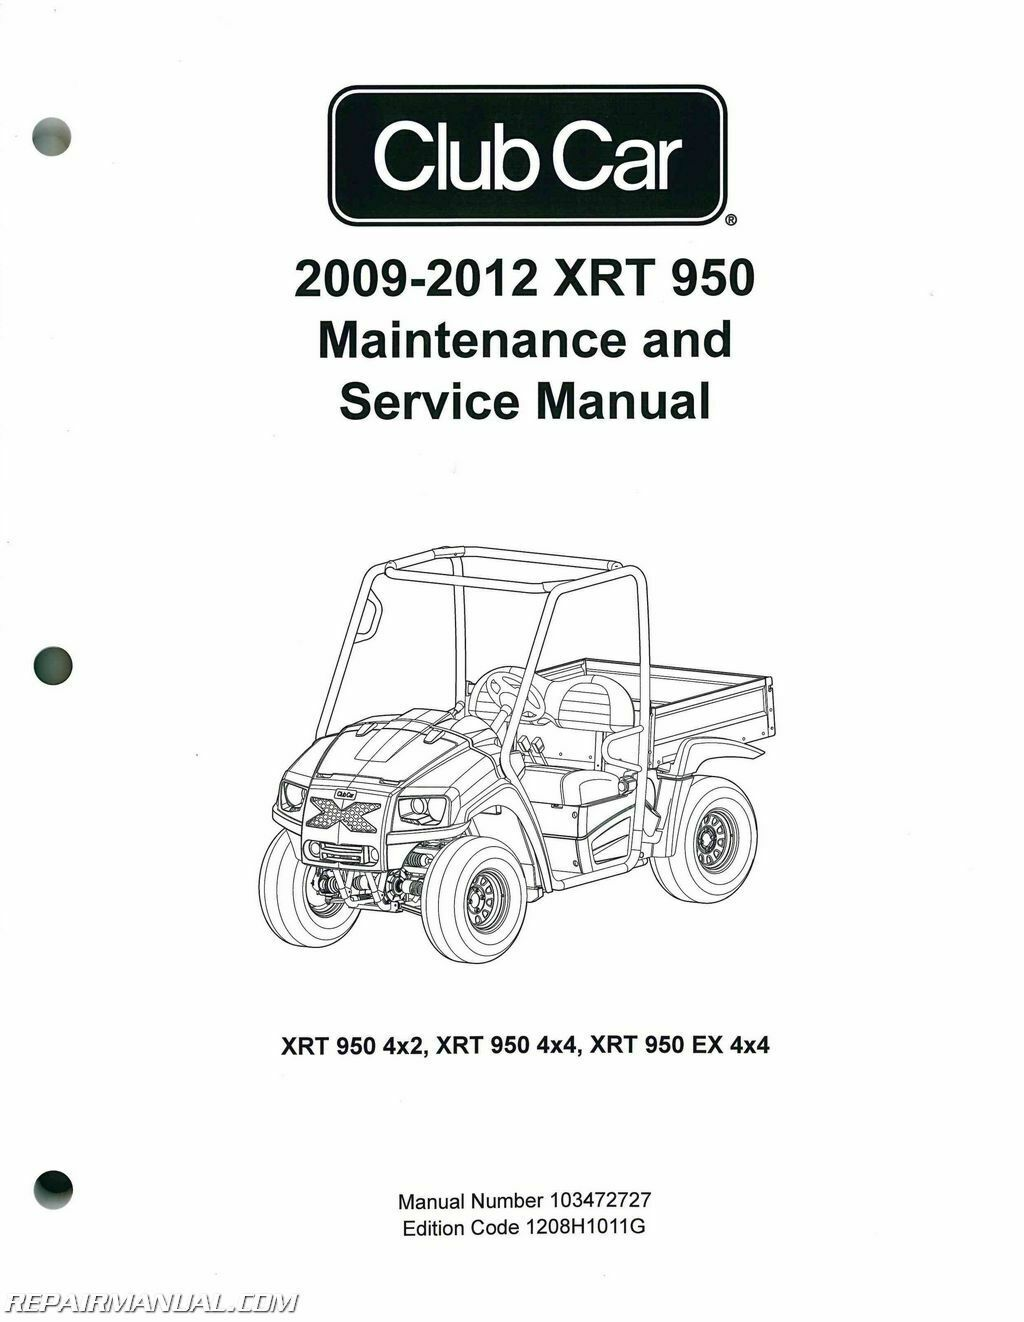 ... Cart Service Manual : 103472727 1 of 1Only 5 available ...